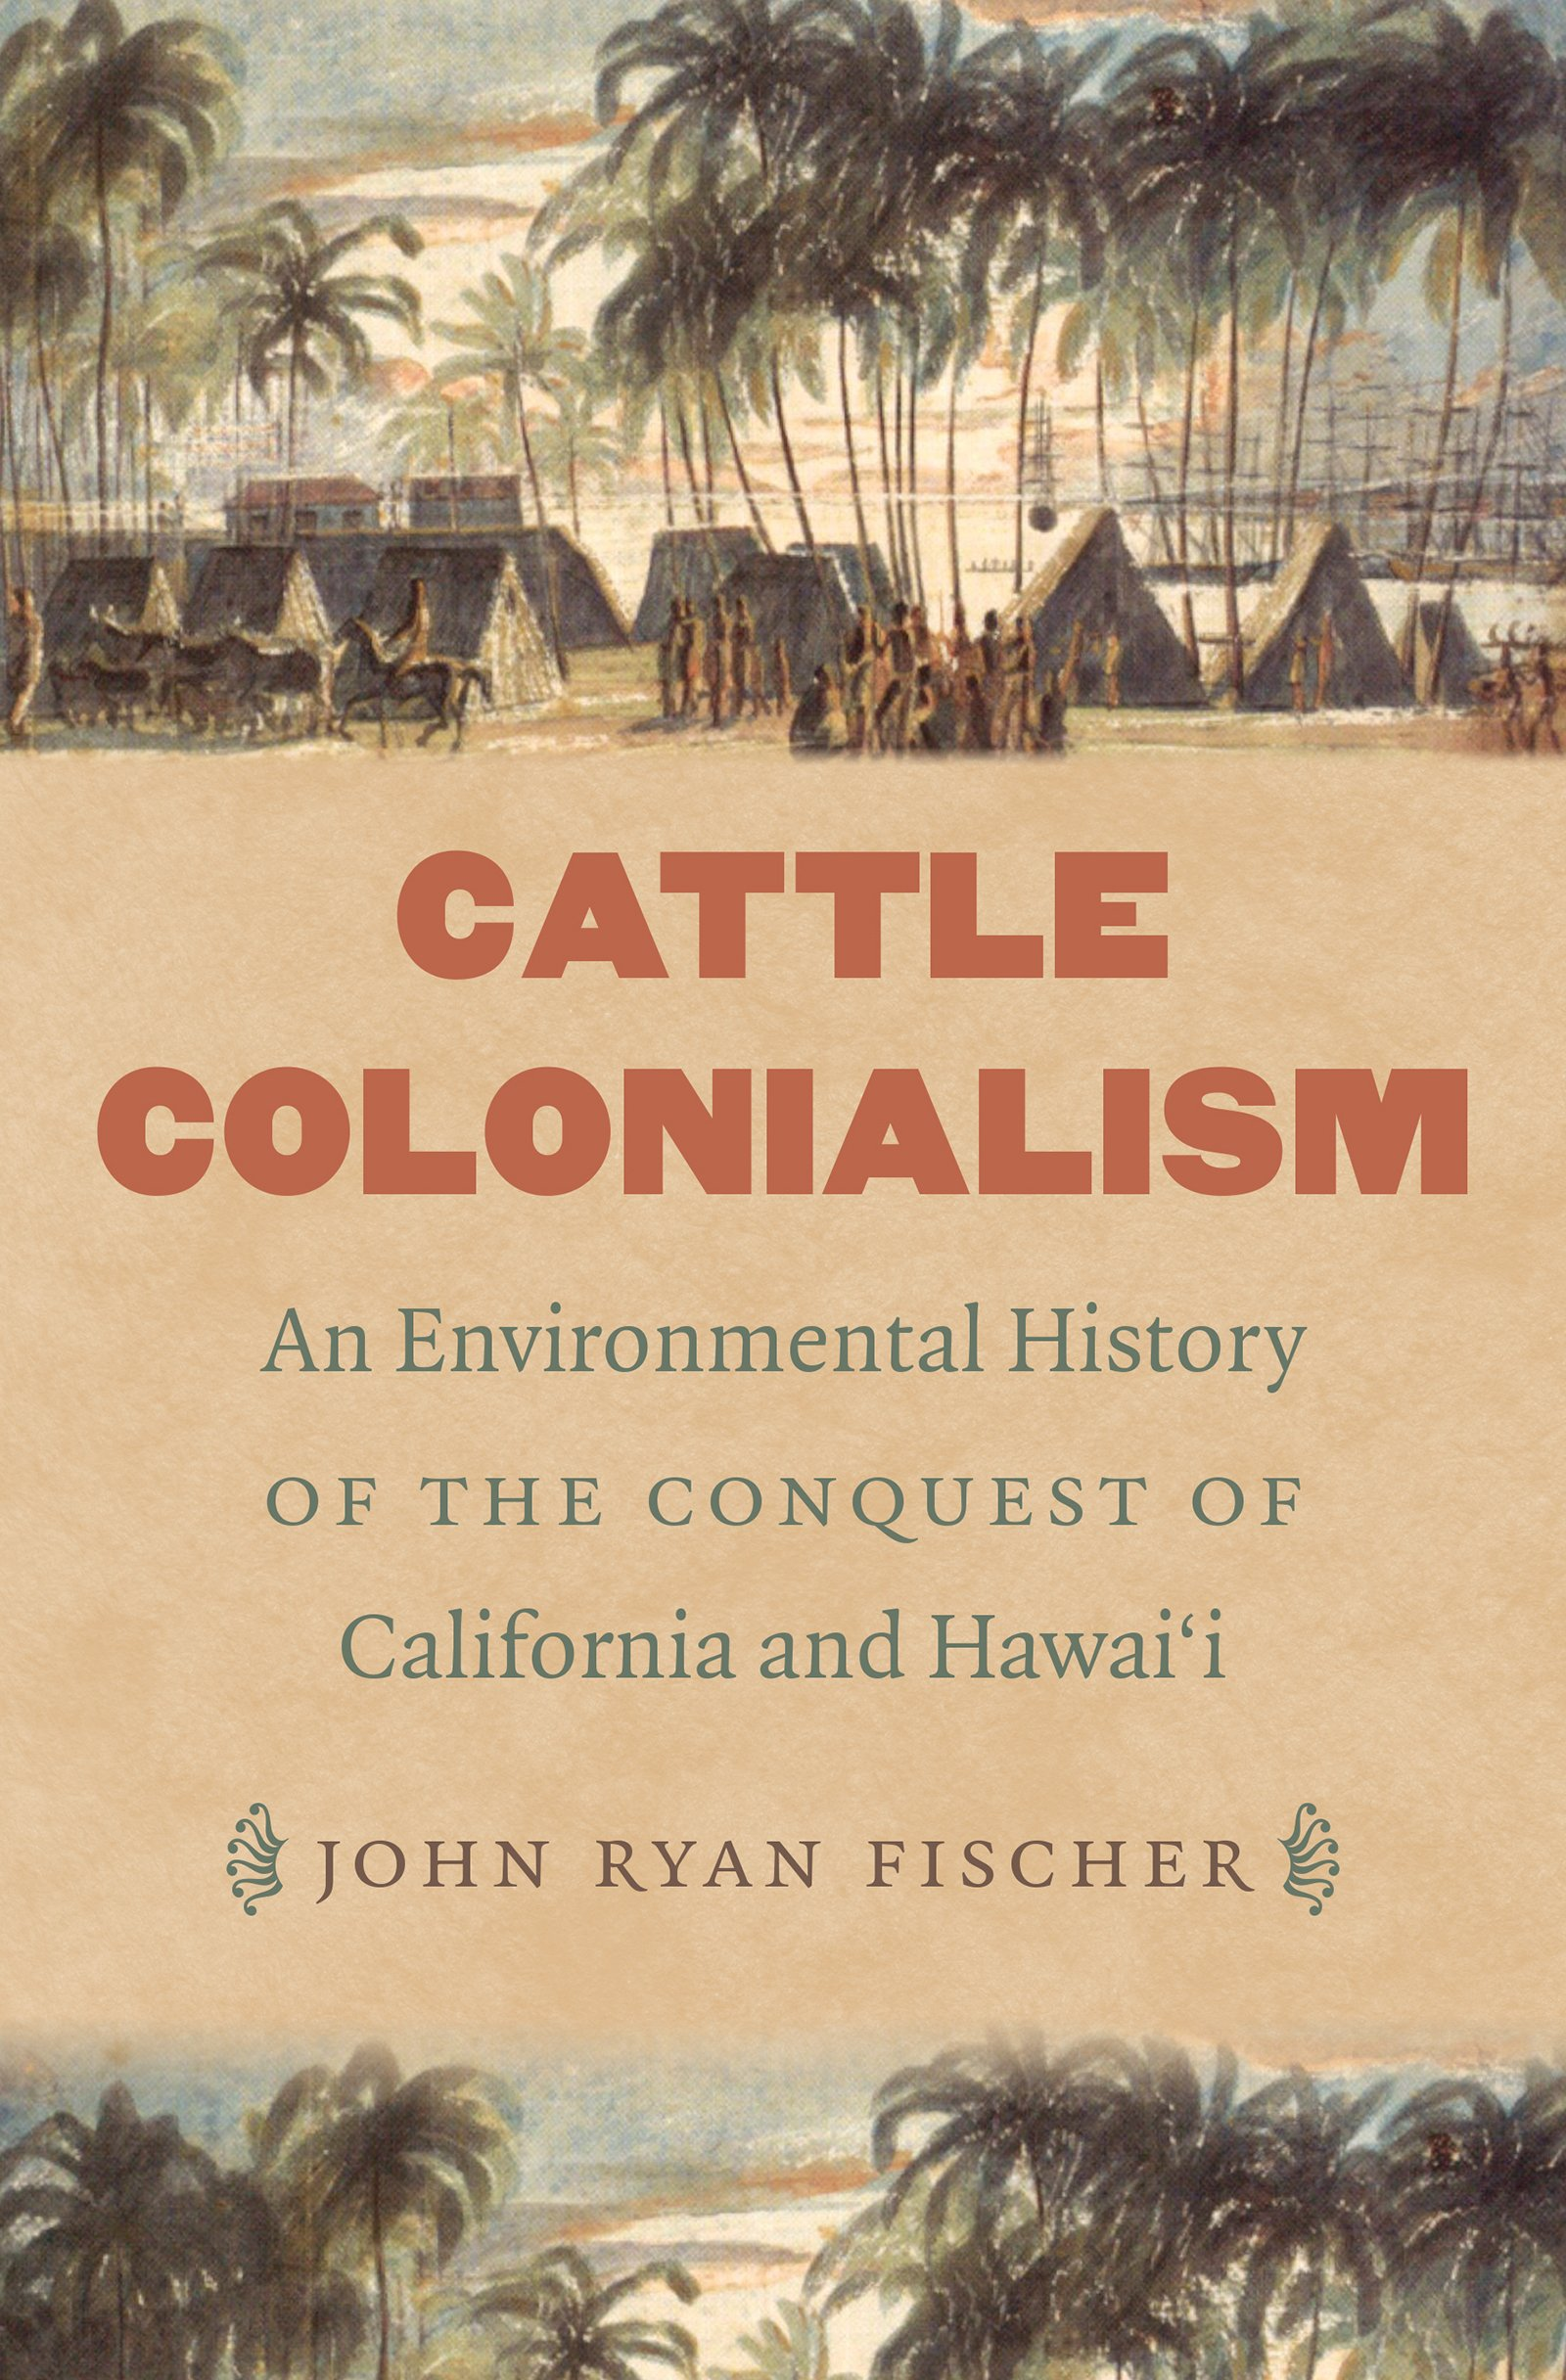 Download Cattle Colonialism: An Environmental History of the Conquest of California and Hawai'i (Flows, Migrations, and Exchanges) pdf